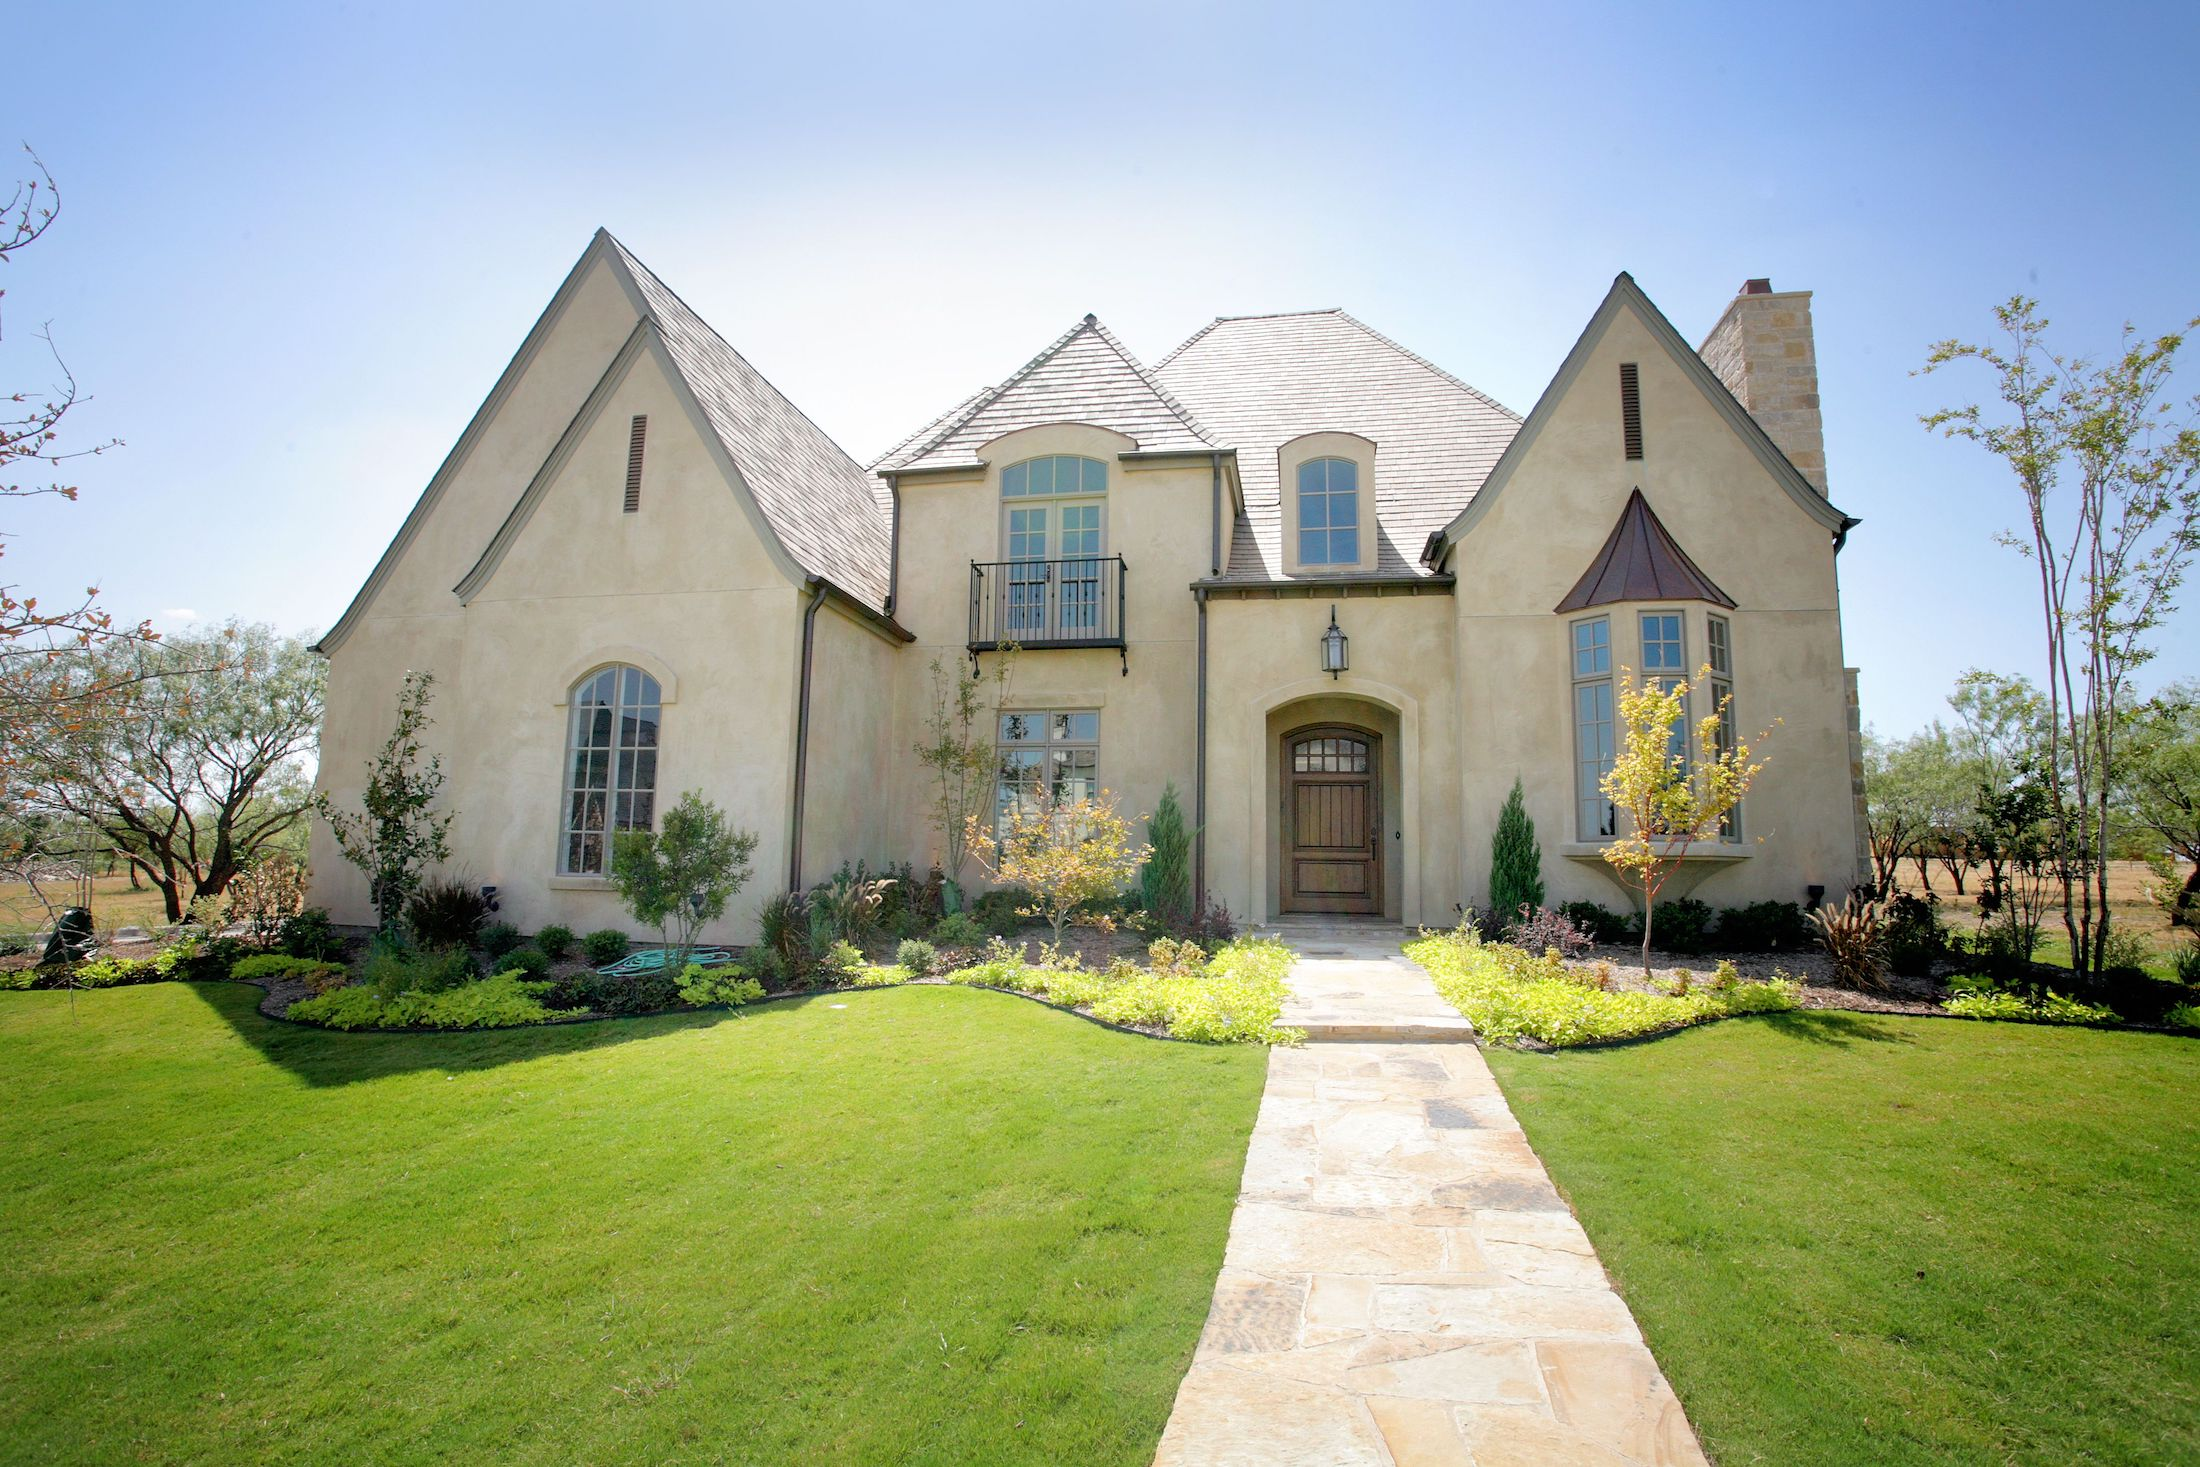 Exterior Home Design (North Texas): Stucco French Norman Home